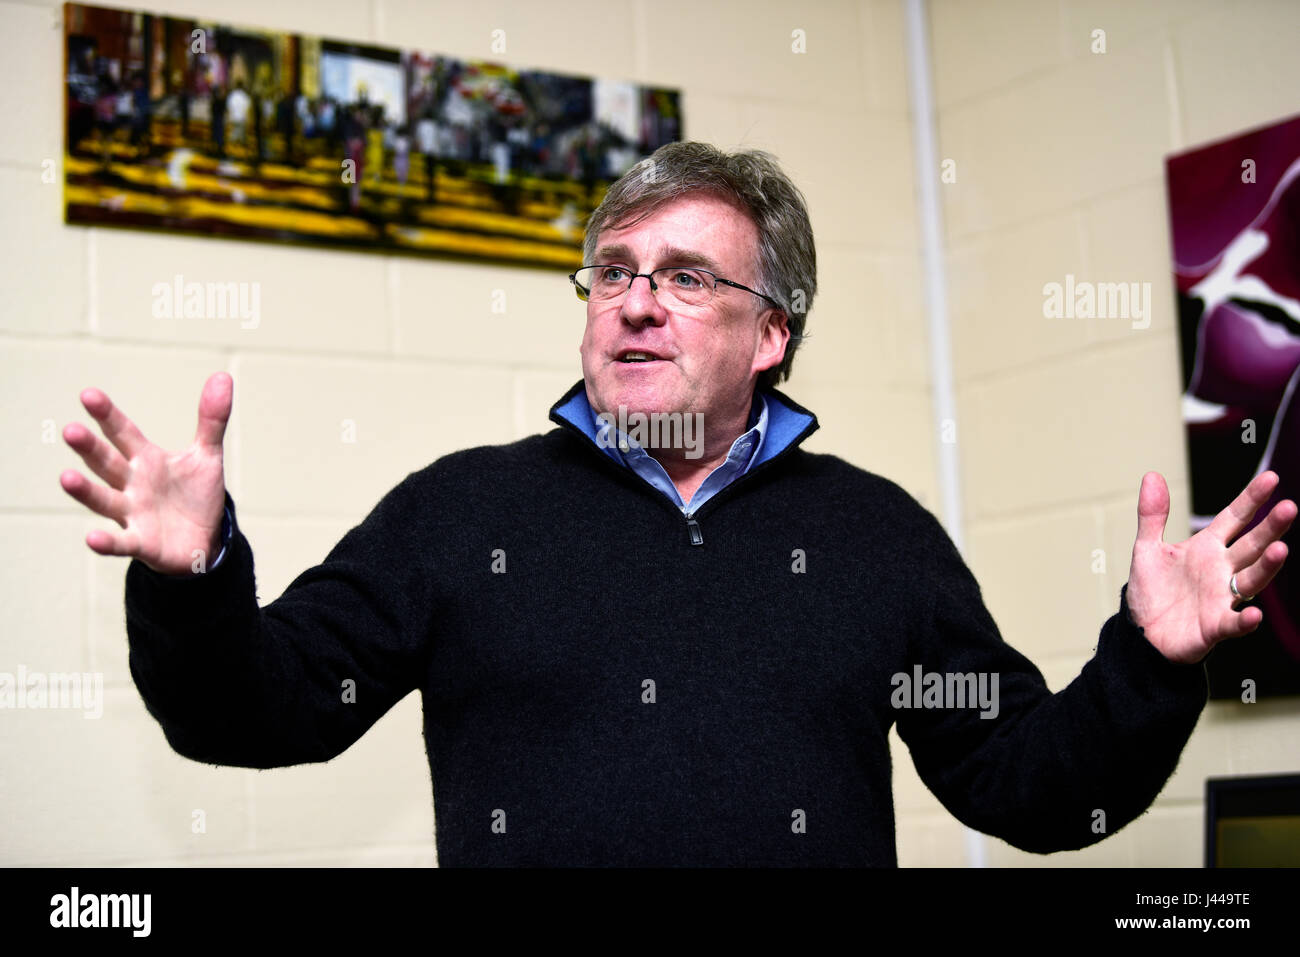 Dr Mike Knapton, British Heart Foundation Associate Medical Director, giving a talk to pupils at The Royal School, - Stock Image